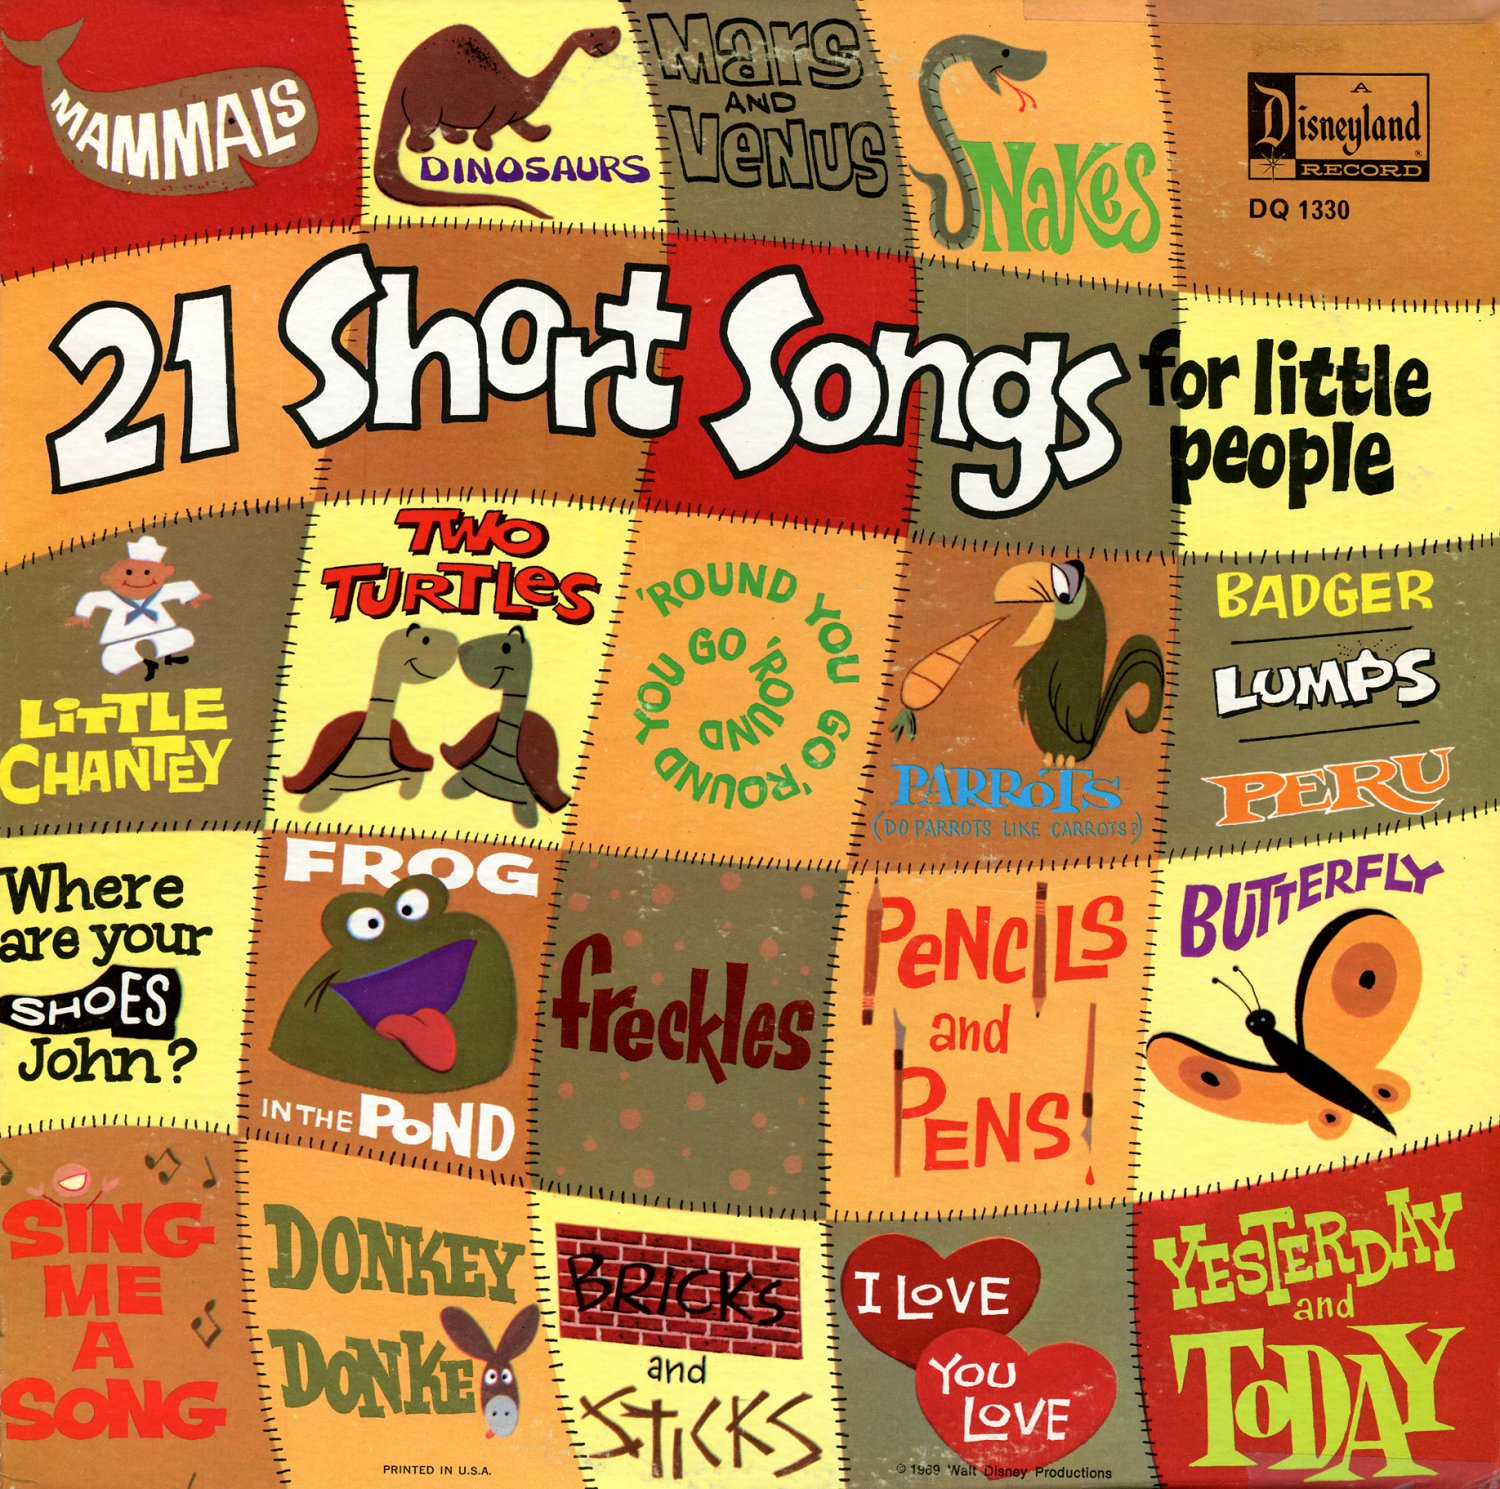 21 Short Songs For Little People - Disneyland Music Collection LP/CD